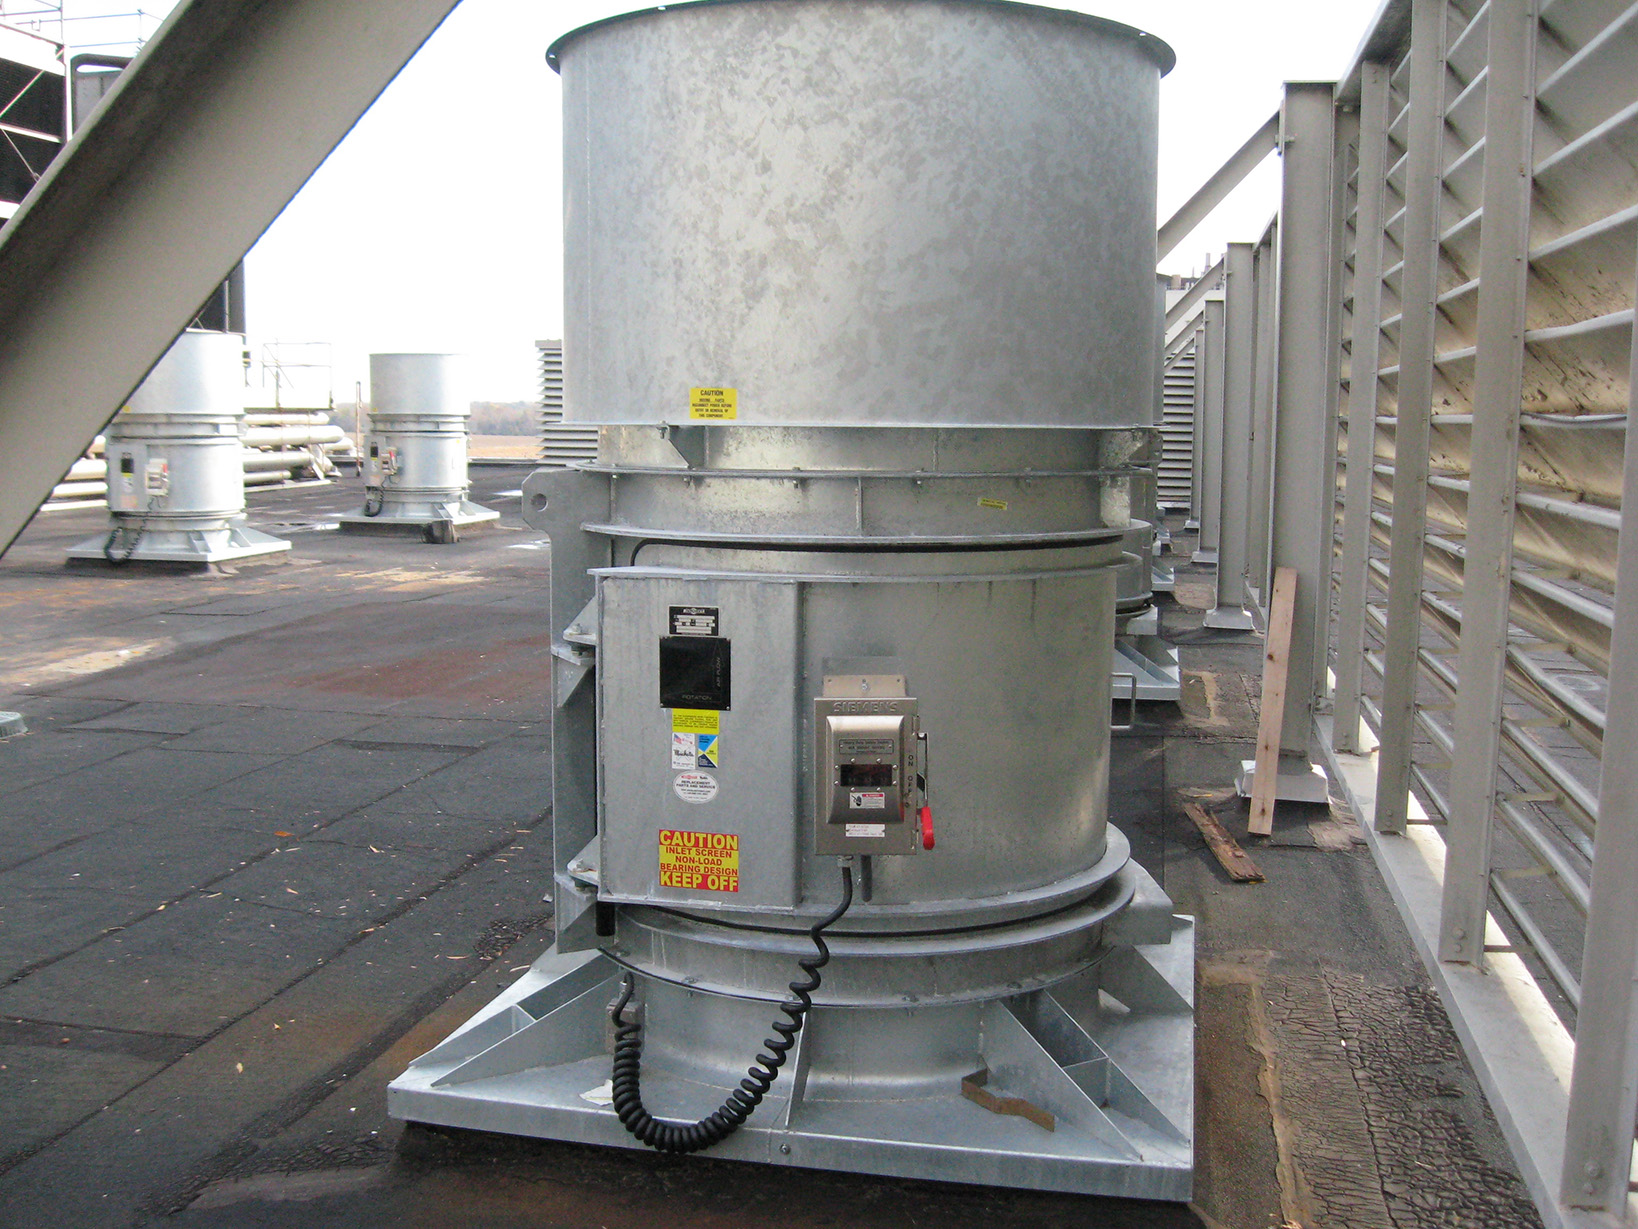 Swingout Roof Ventilator - Building Ventilation 3